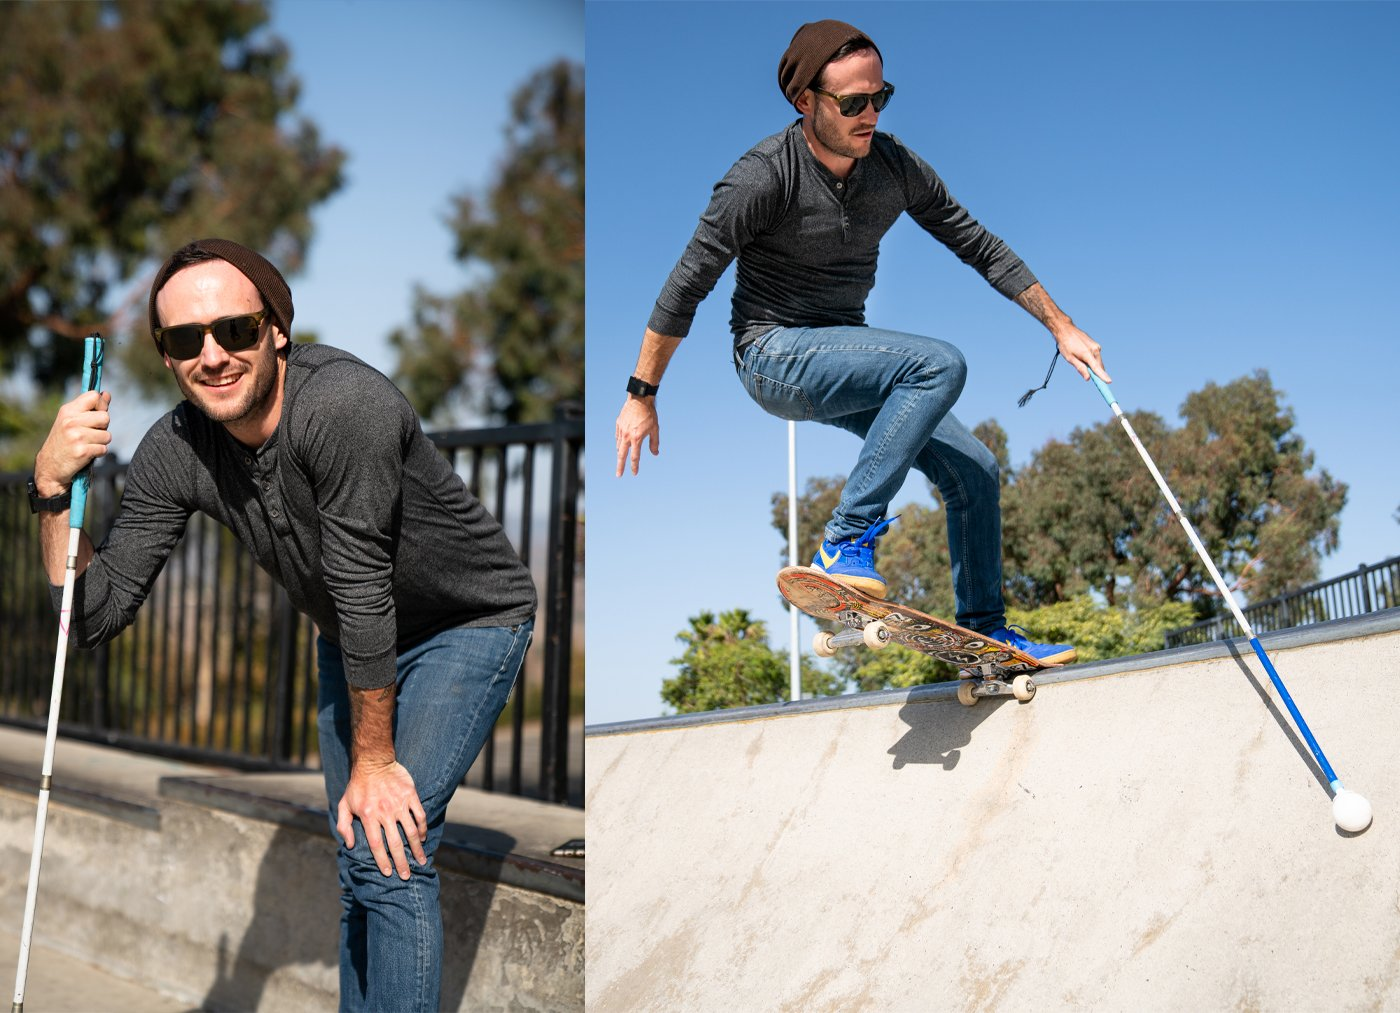 Justin haning out with is at our local skatepark in San Clemente. He session'd the bowl and transitions until we had to drag him away. He loves to skate and the local kids enjoyed watching him do his thing.